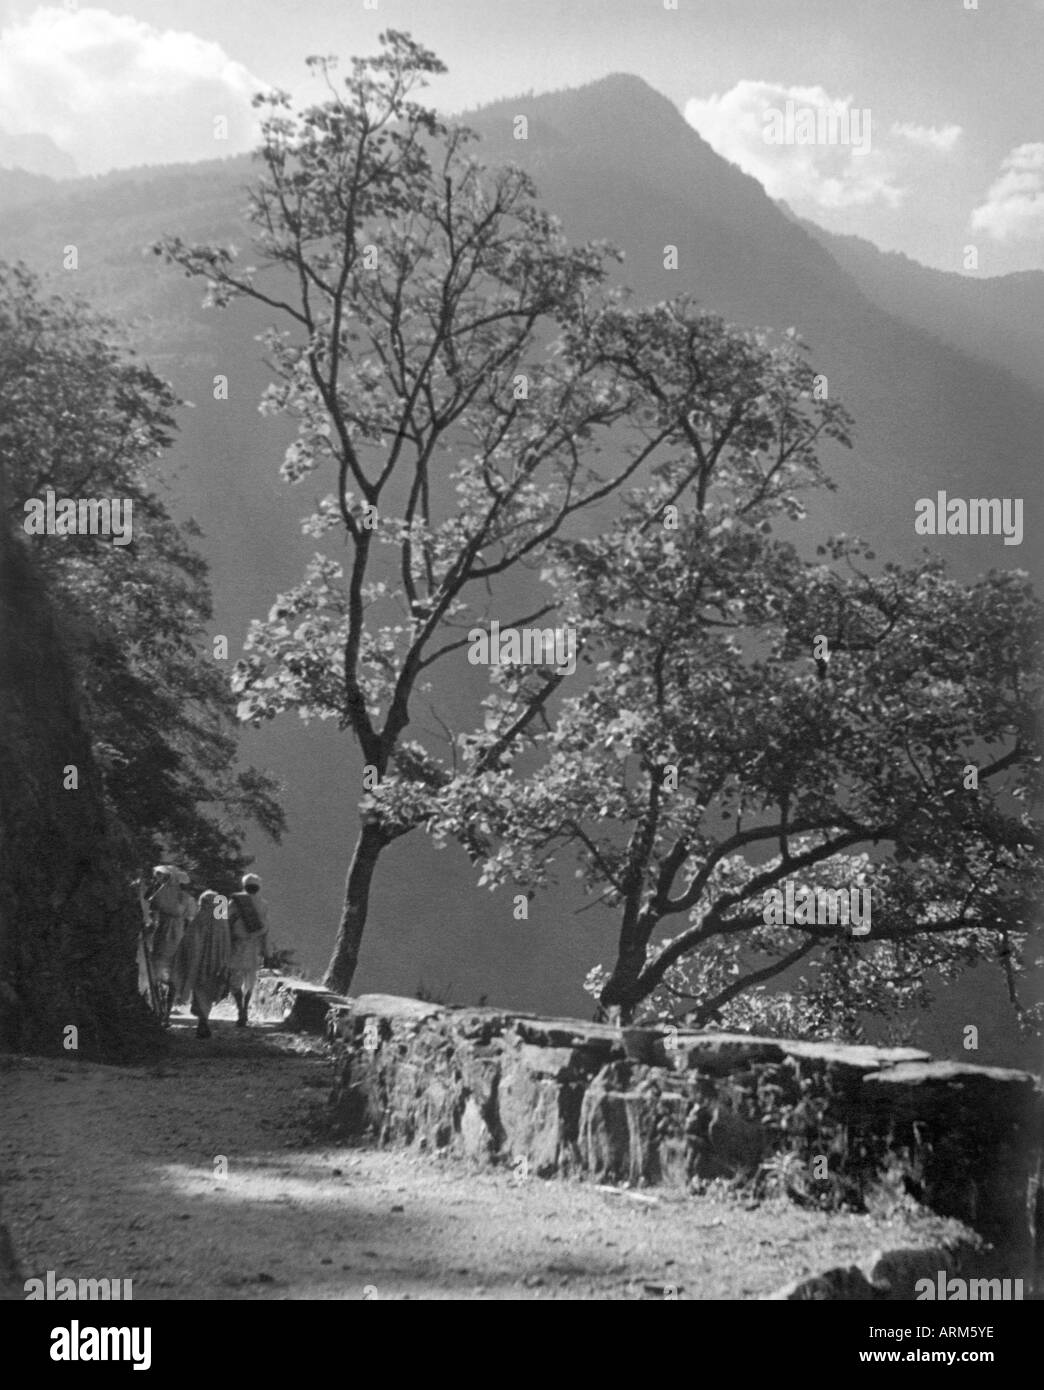 VRB101269 People walking on trek in Himalayan region North India 1940 s - Stock Image